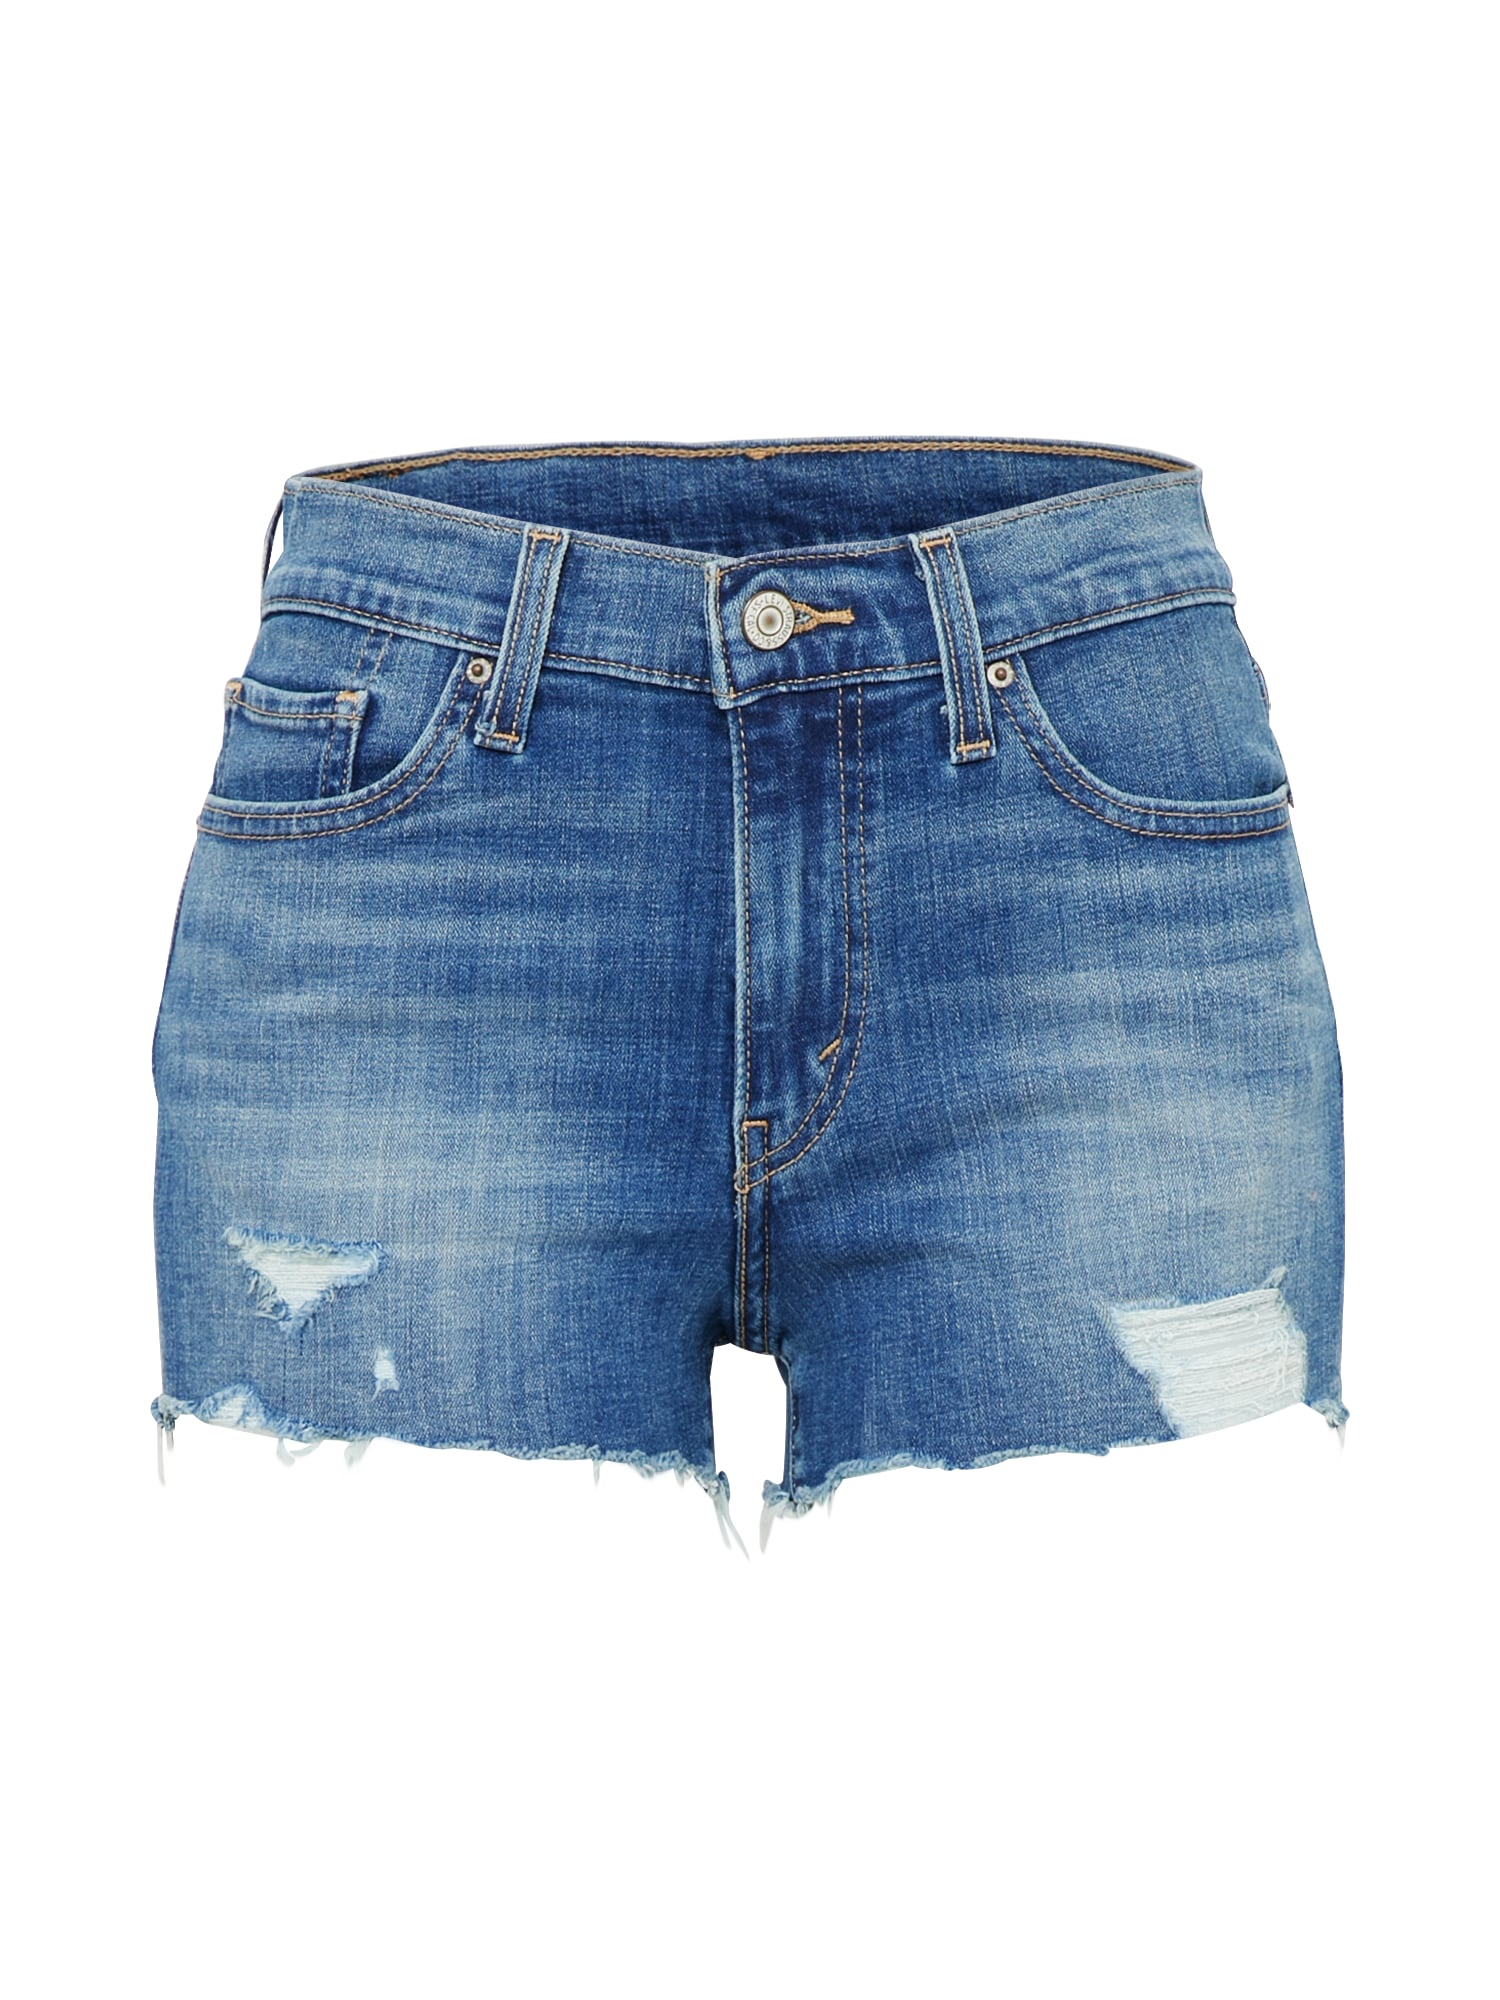 LEVI'S Dames Jeans donkerblauw